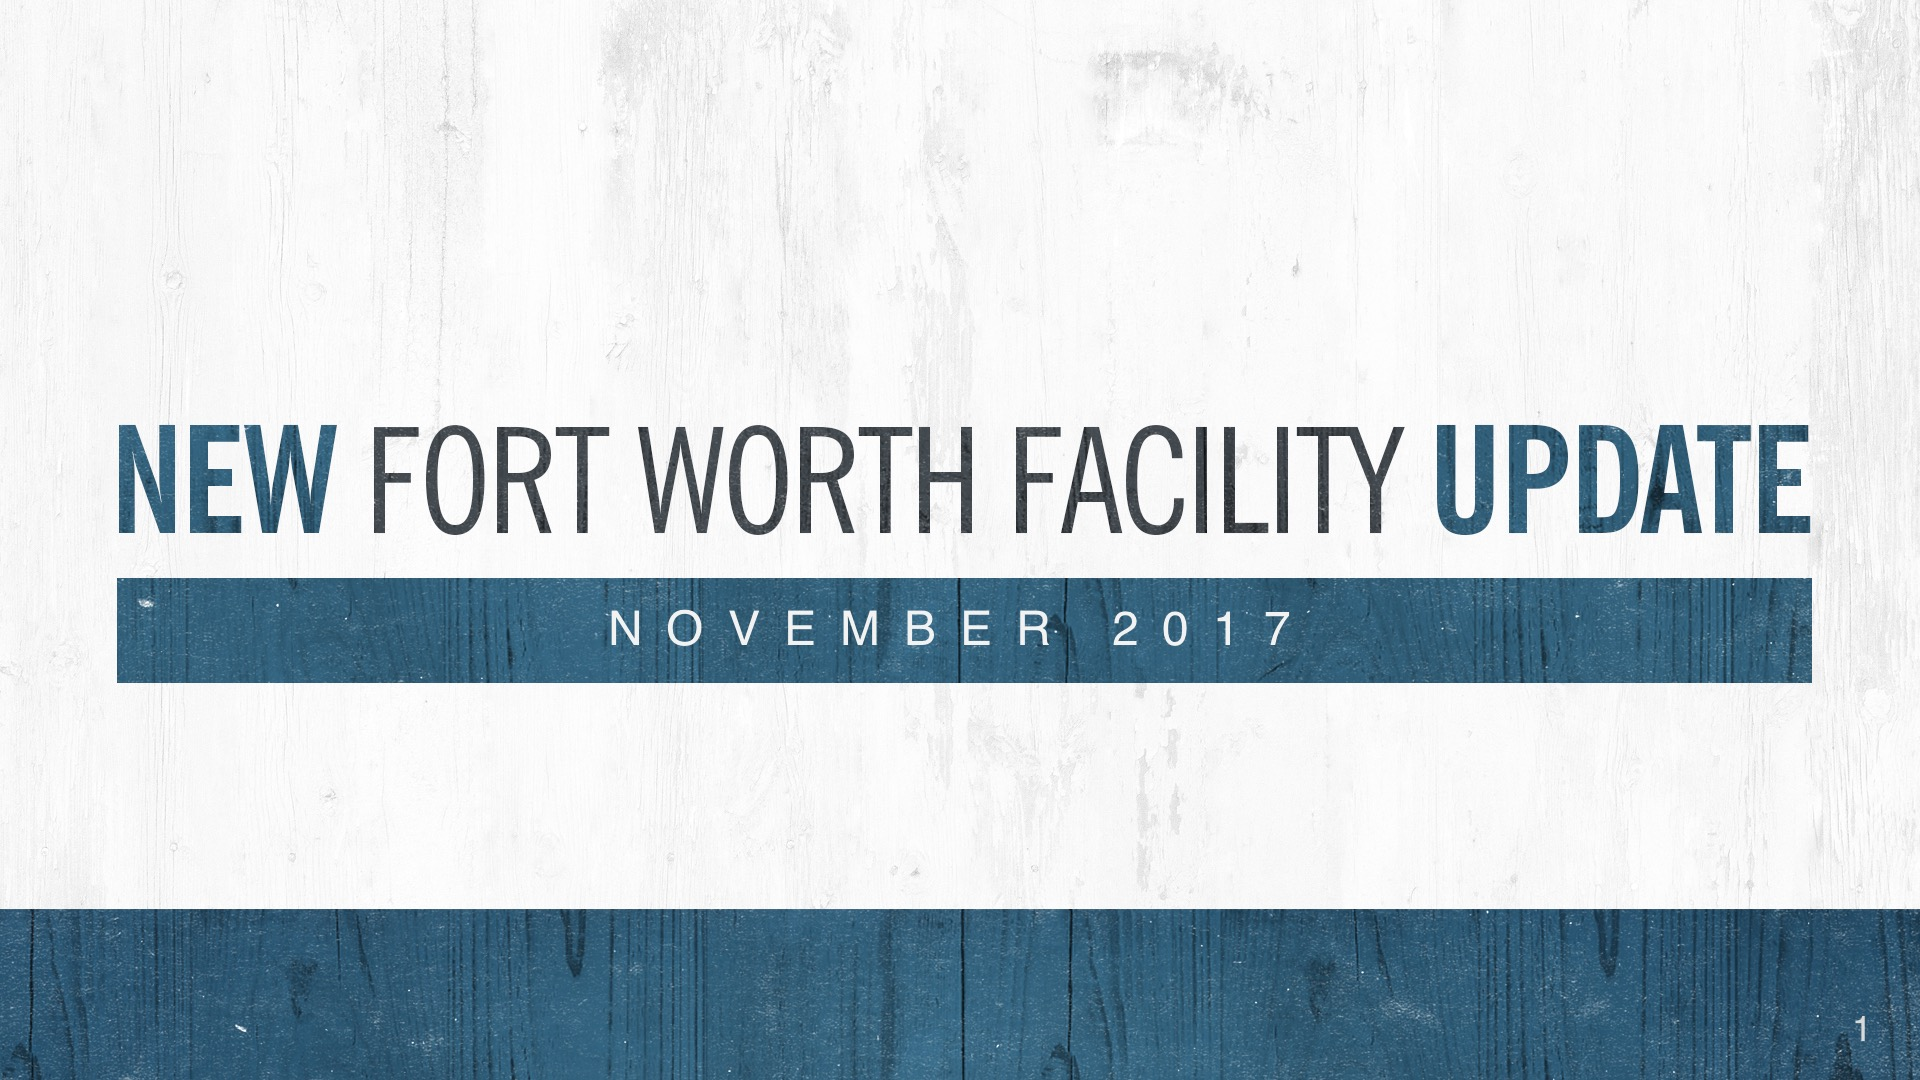 An Update on the Mission in Fort Worth